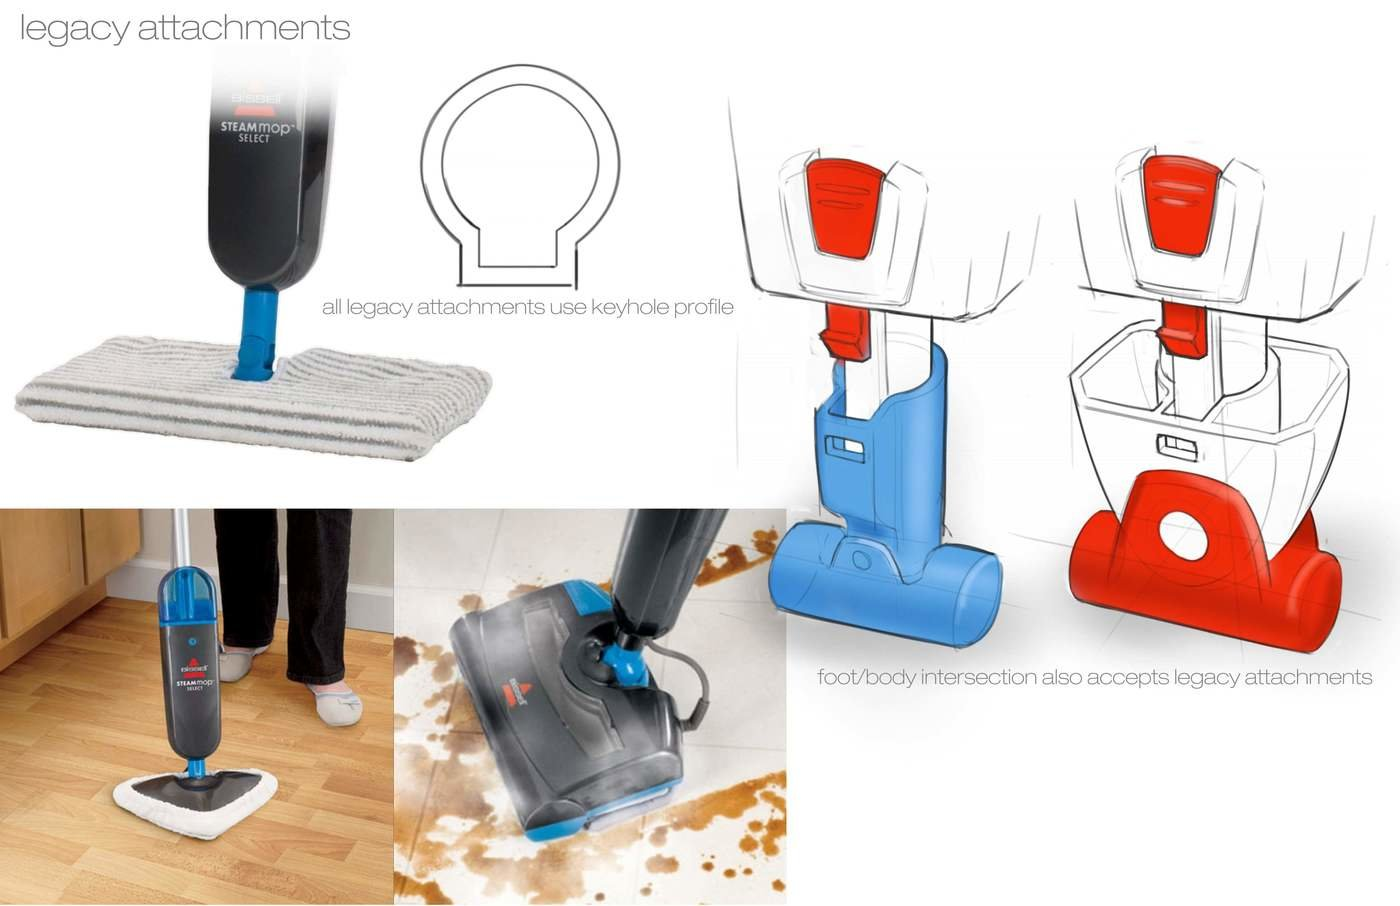 bissell powerfresh steam mop user manual